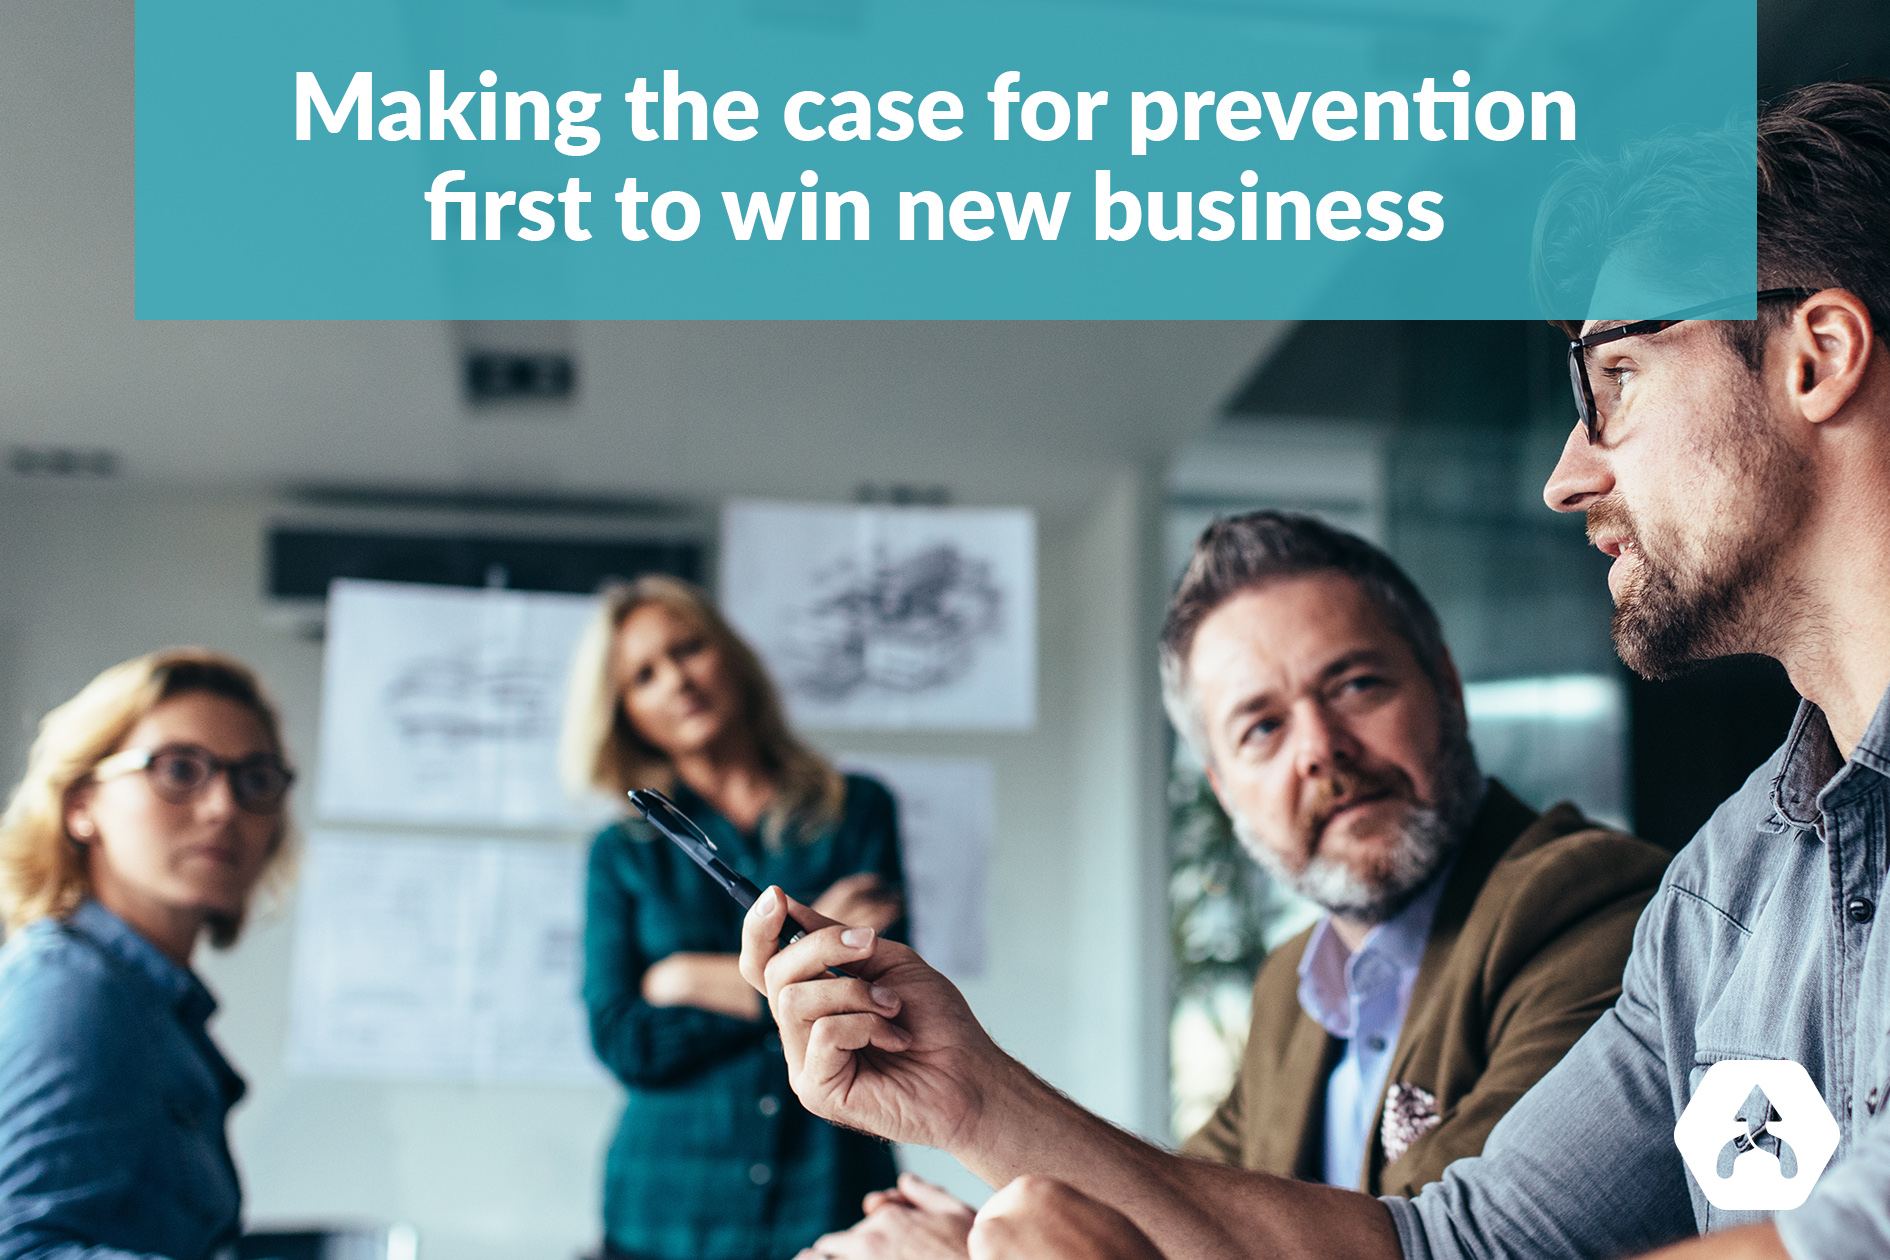 Making the case for prevention first to win new business